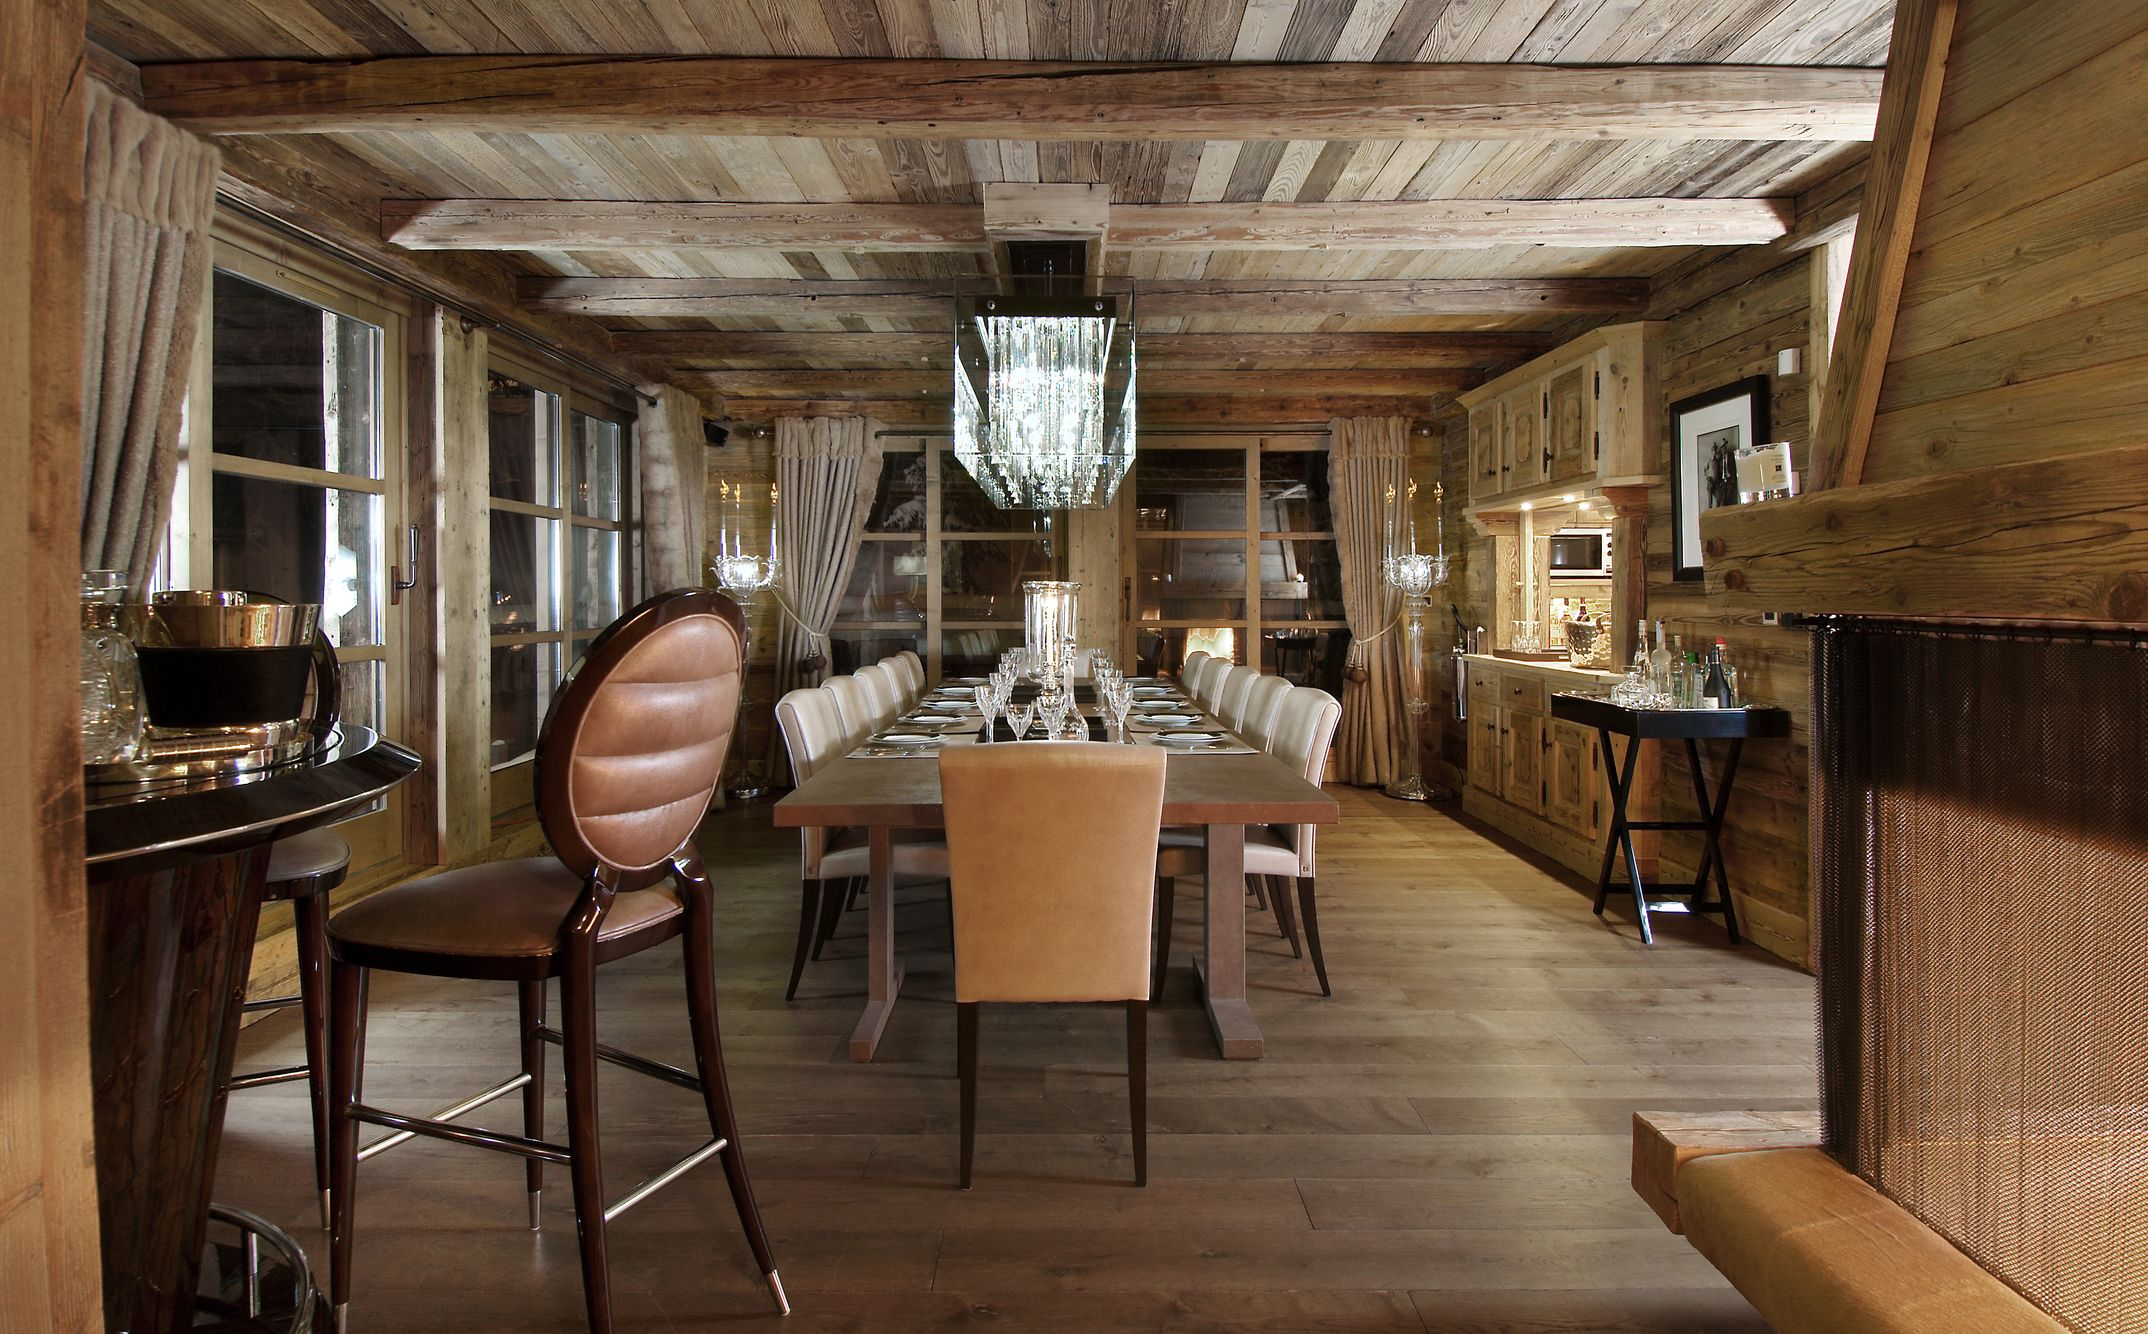 Chalet Luxe Courchevel 1850 : Location 14 personnes, luxe, vue ...